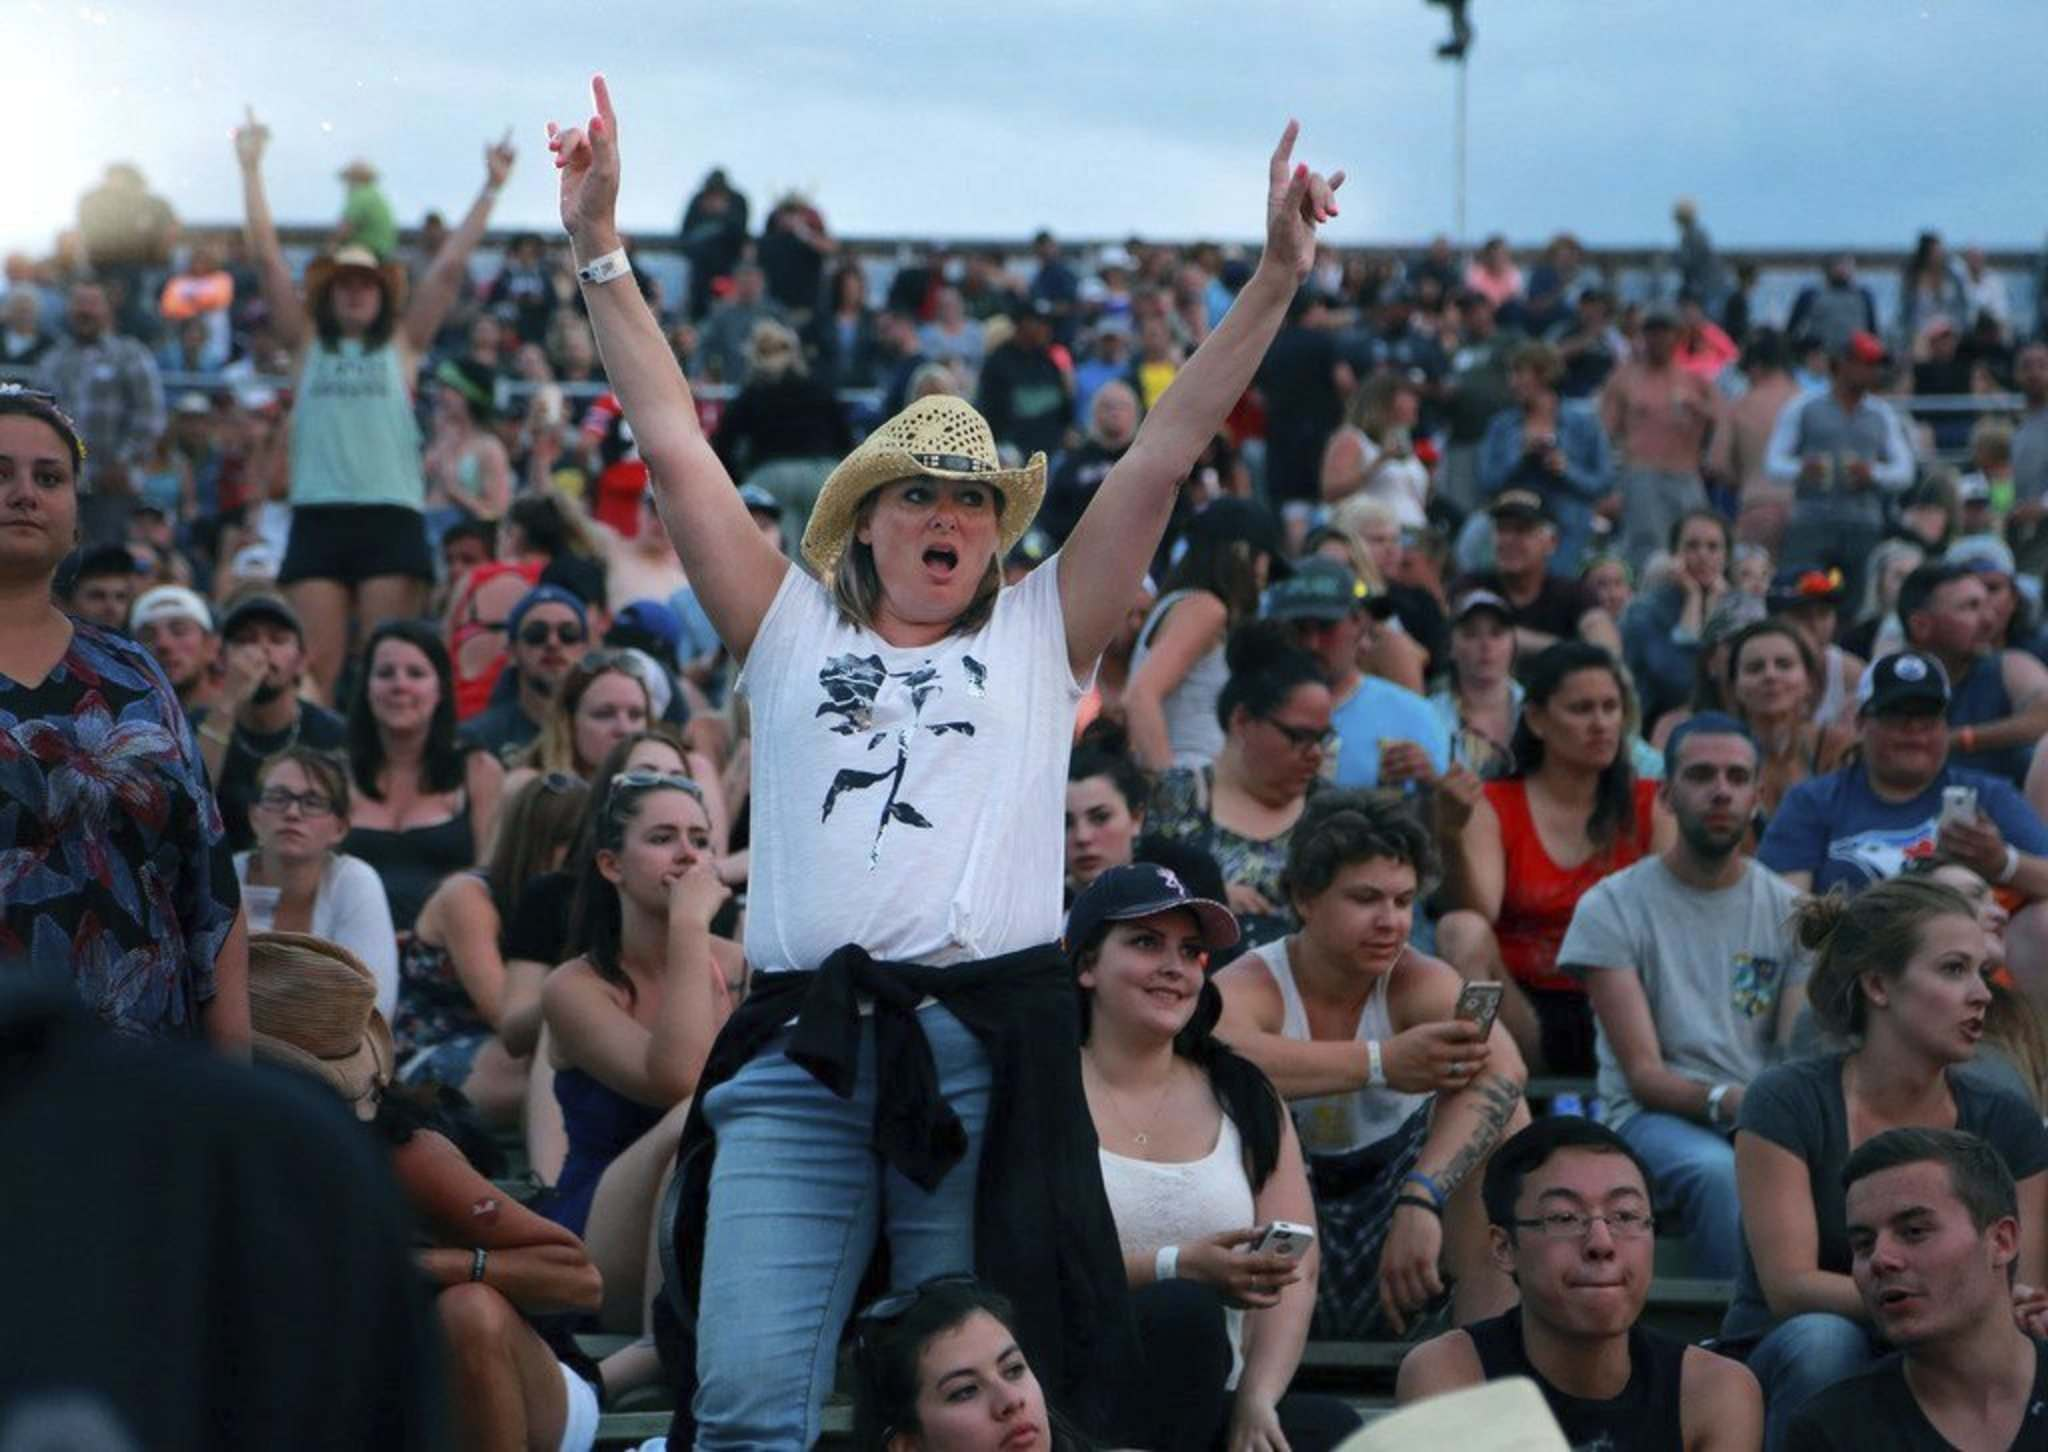 A woman cheers as she and the audience at Dauphin's Countryfest await the Saturday night headliners last year. (Colin Corneau / Brandon Sun files)